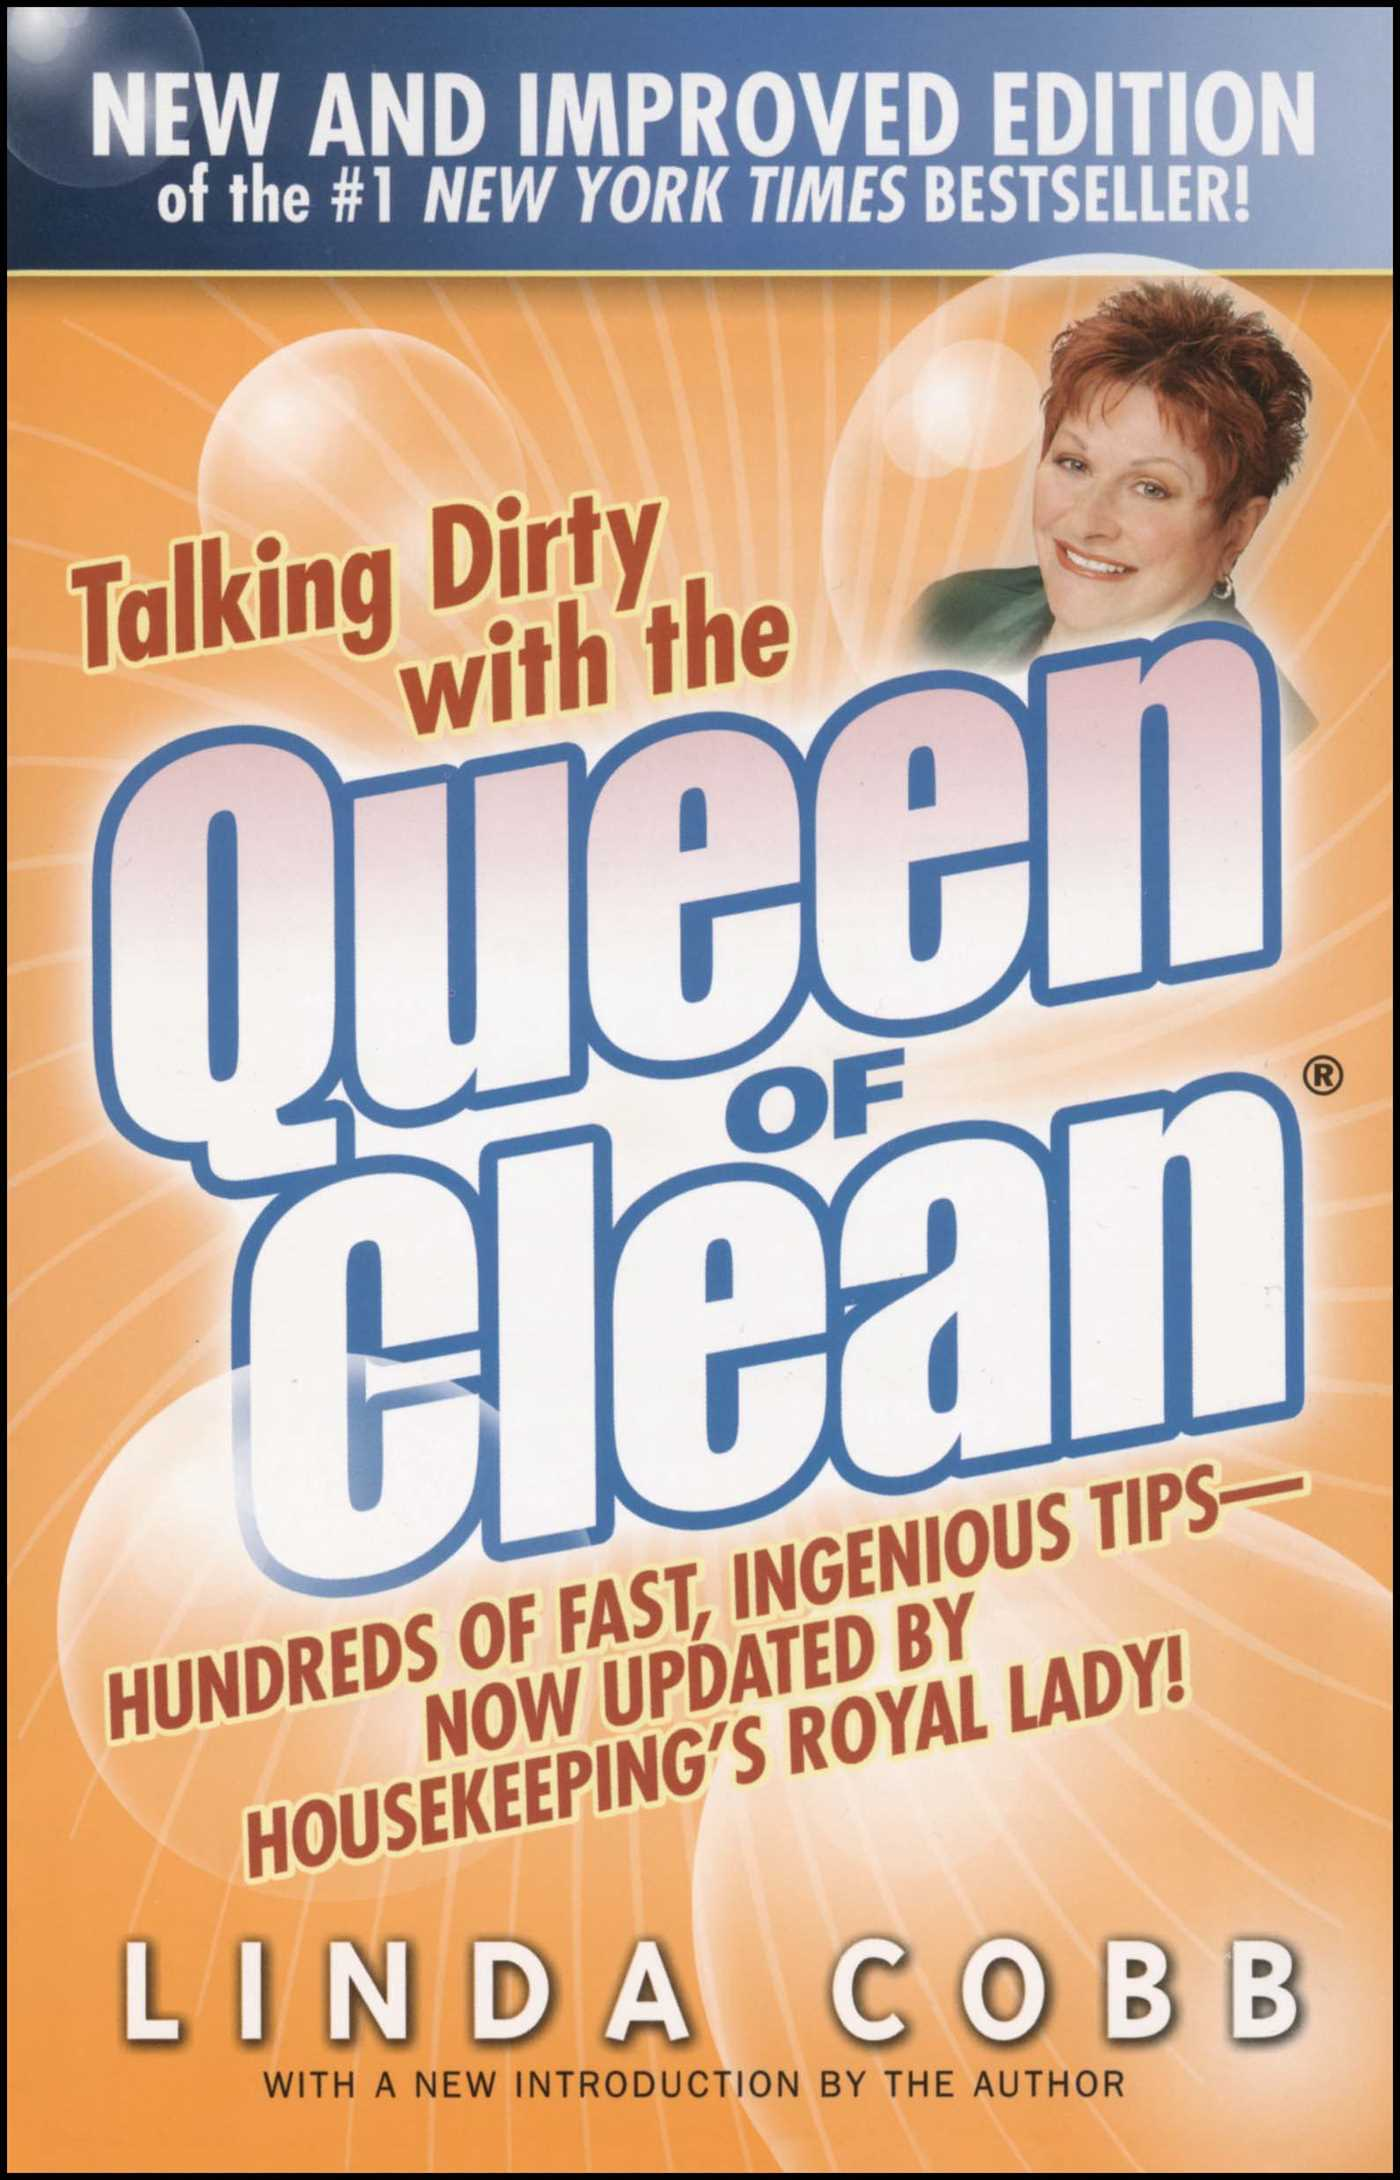 Talking-dirty-with-the-queen-of-clean-9780743490405_hr